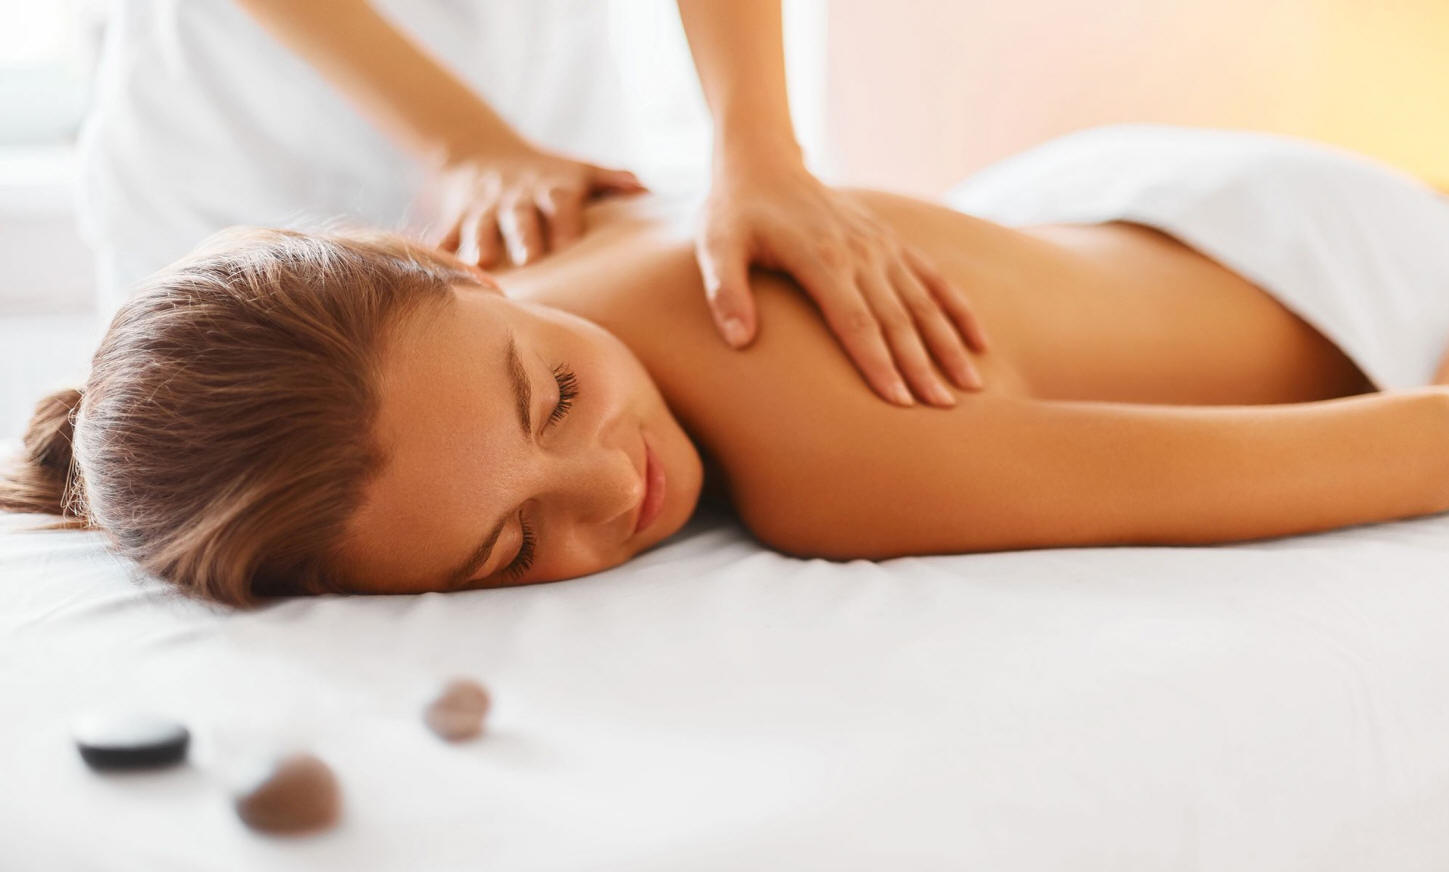 Copy of female massage 3